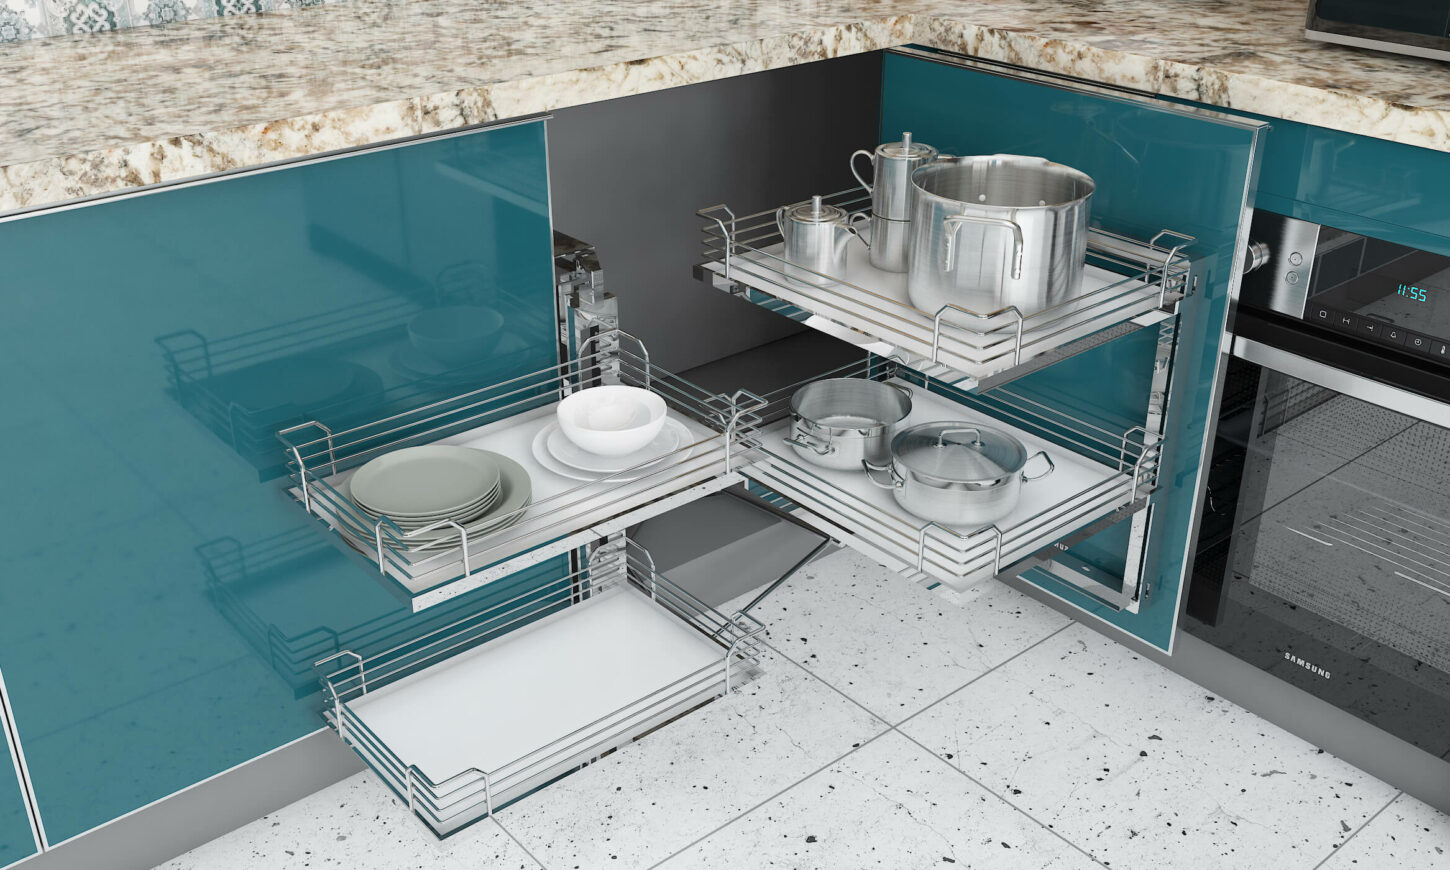 Modern classic modular kitchen with wall module with vertical lift for easy access